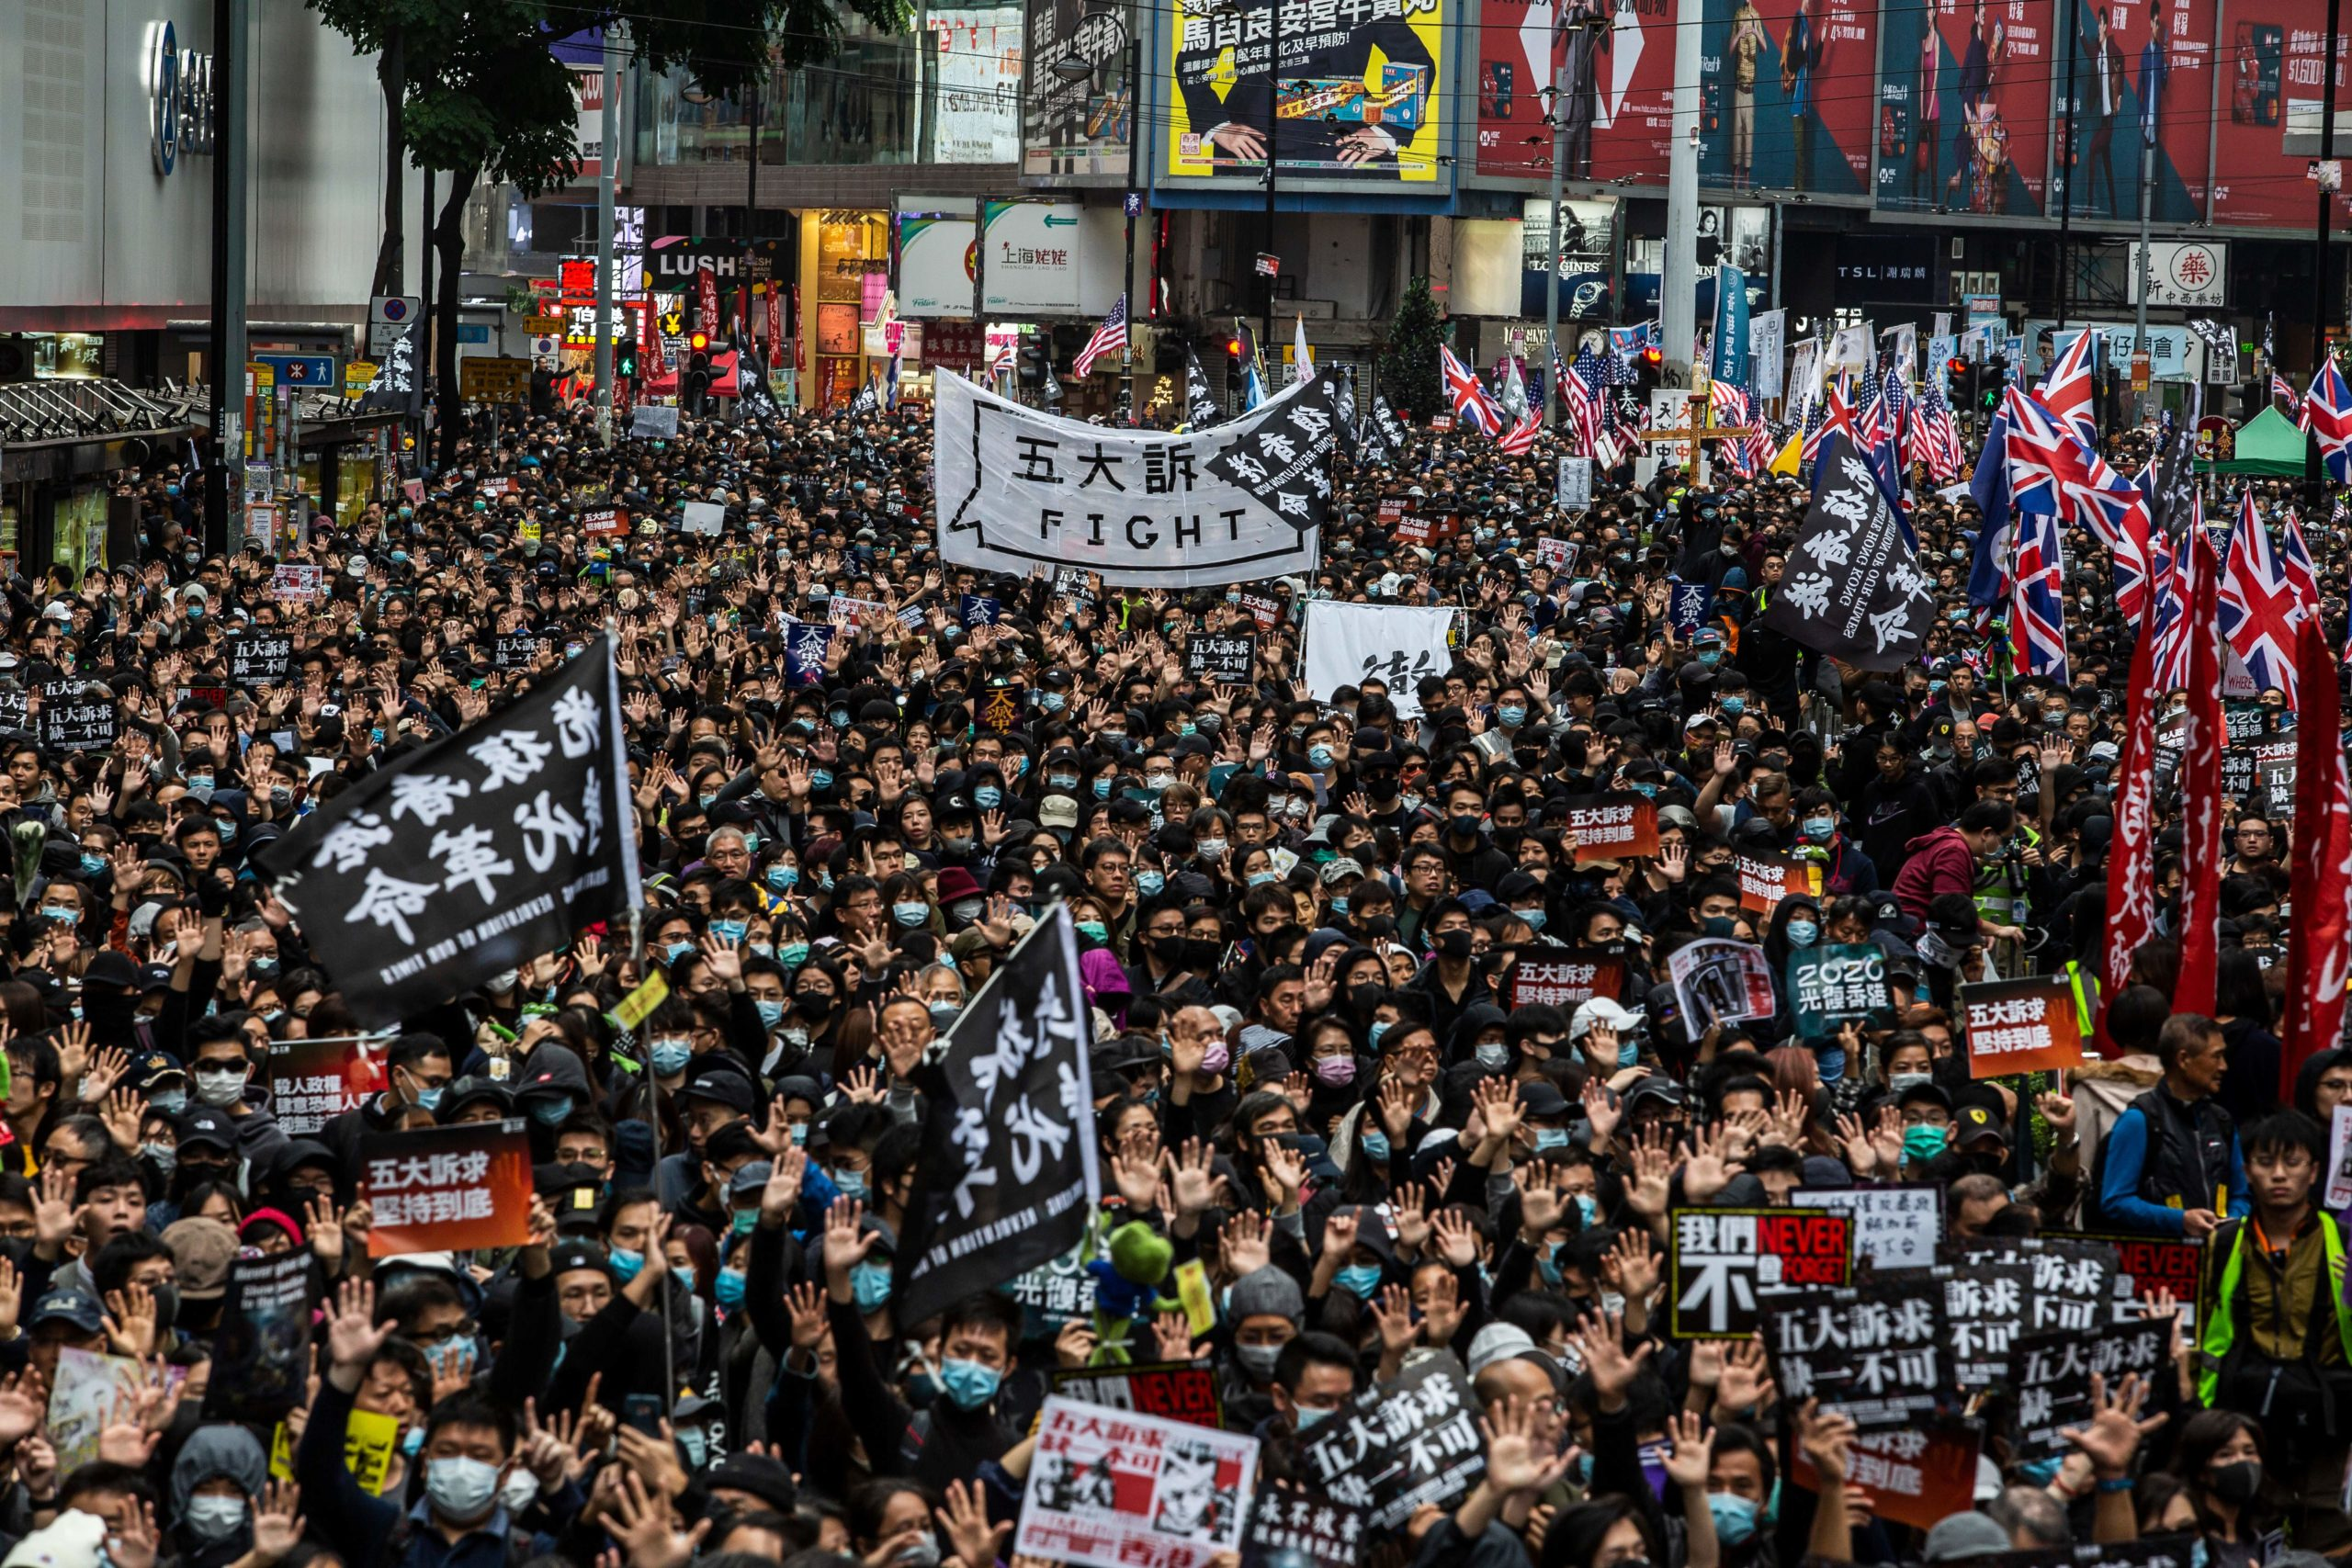 TOPSHOT - People take part in a pro-democracy march in Hong Kong on January 1, 2020. - Tens of thousands of protesters marched in Hong Kong during a massive pro-democracy rally on New Year's Day, looking to carry the momentum of their movement into 2020. (Photo by ISAAC LAWRENCE / AFP) (Photo by ISAAC LAWRENCE/AFP via Getty Images)